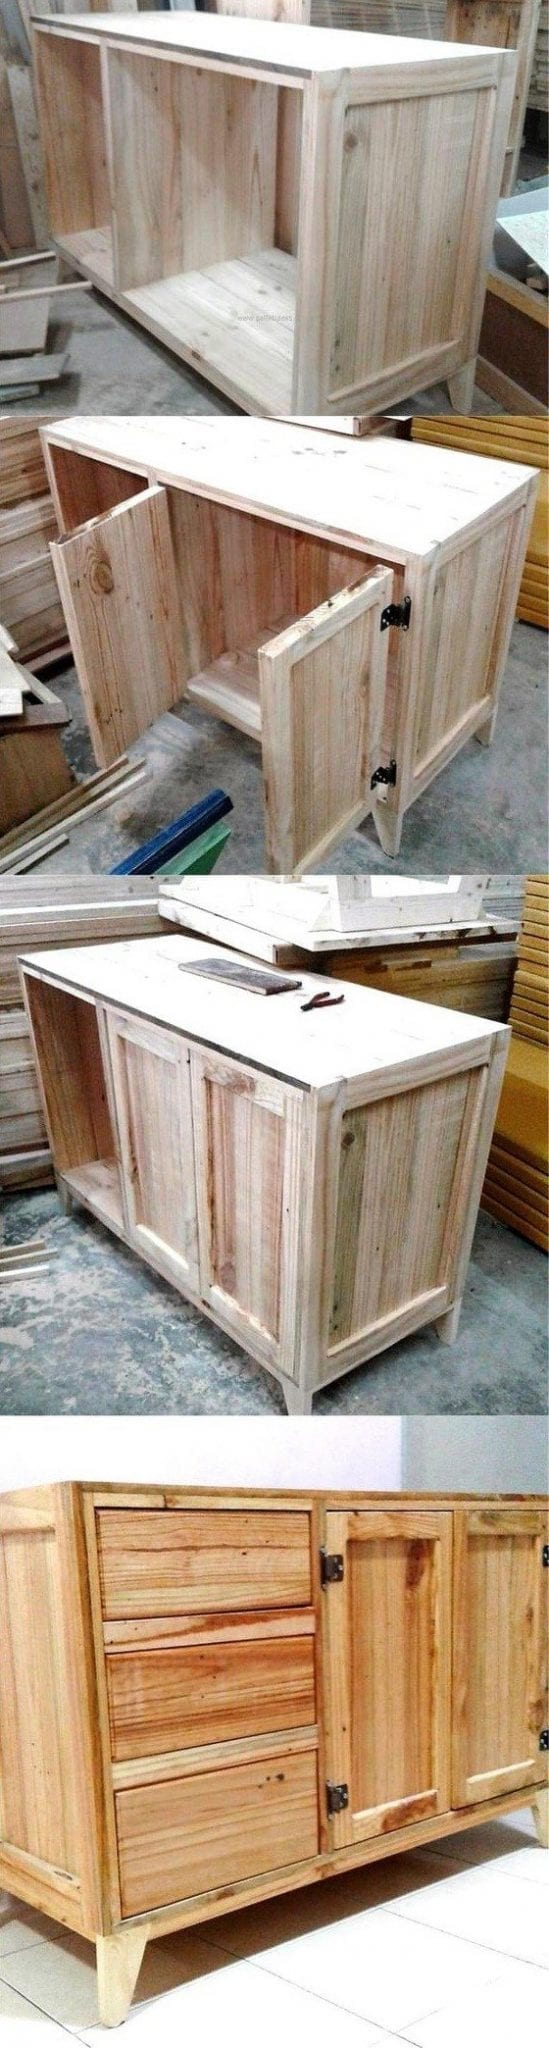 25 small wood projects that can be done within a few hours